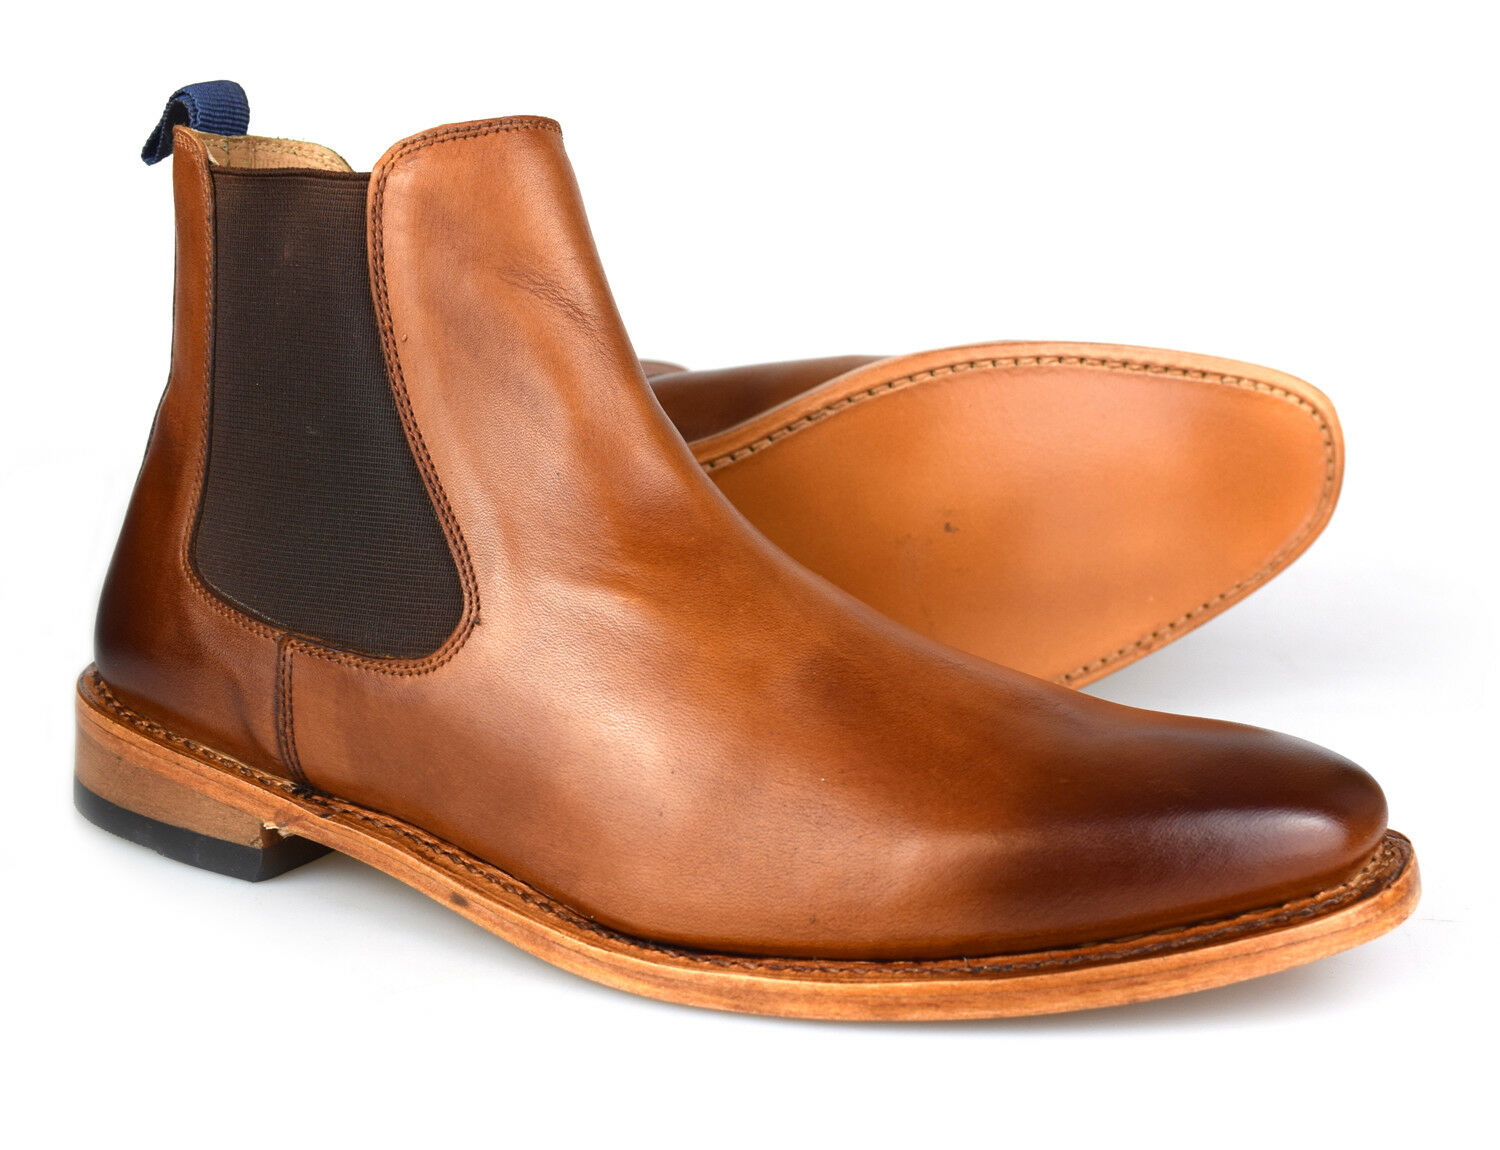 Premium Goodyear Welted Mens Tan Leather Chelsea Boots 162T Free UK P&P